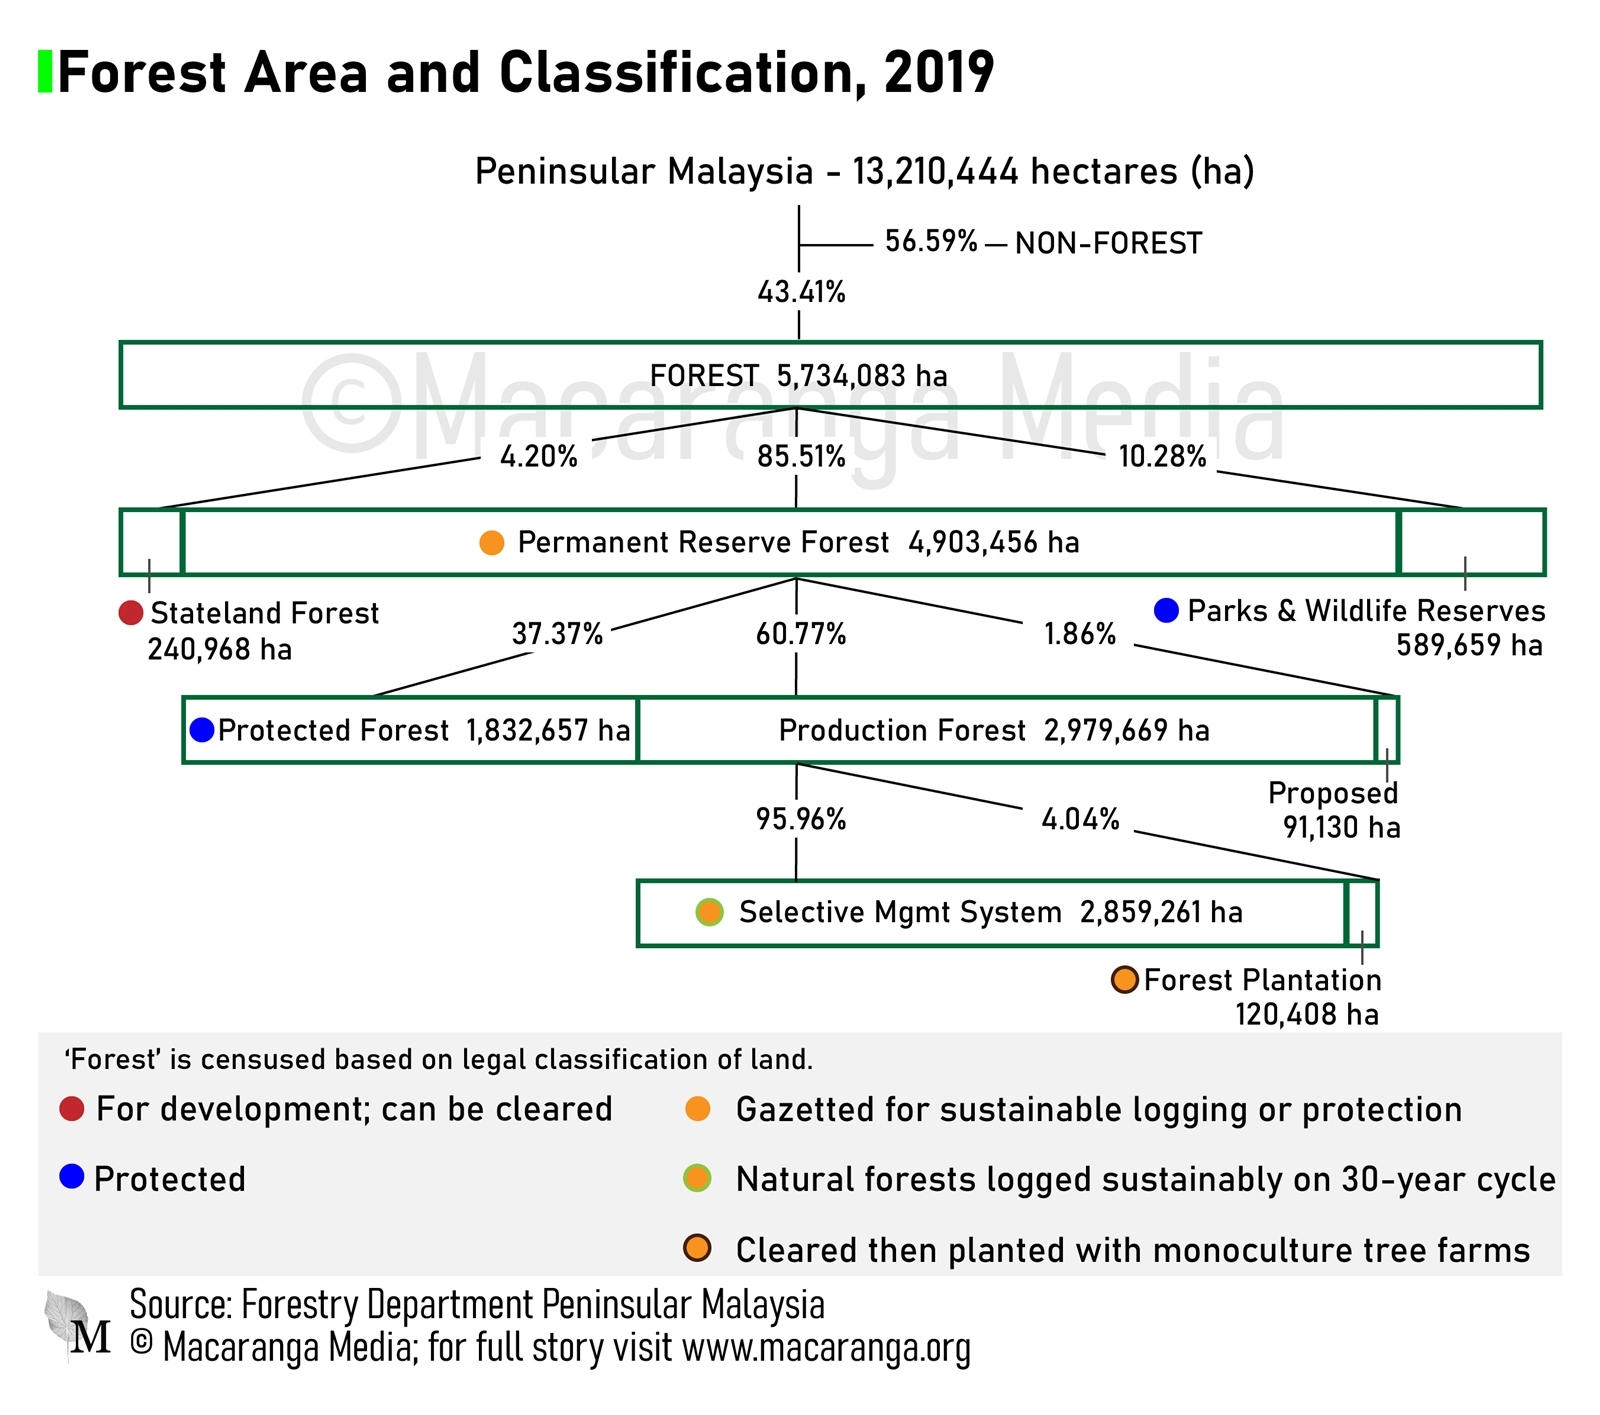 A diagram showing the breakdown of forest classifications and area in Peninsular Malaysia (Macaranga)